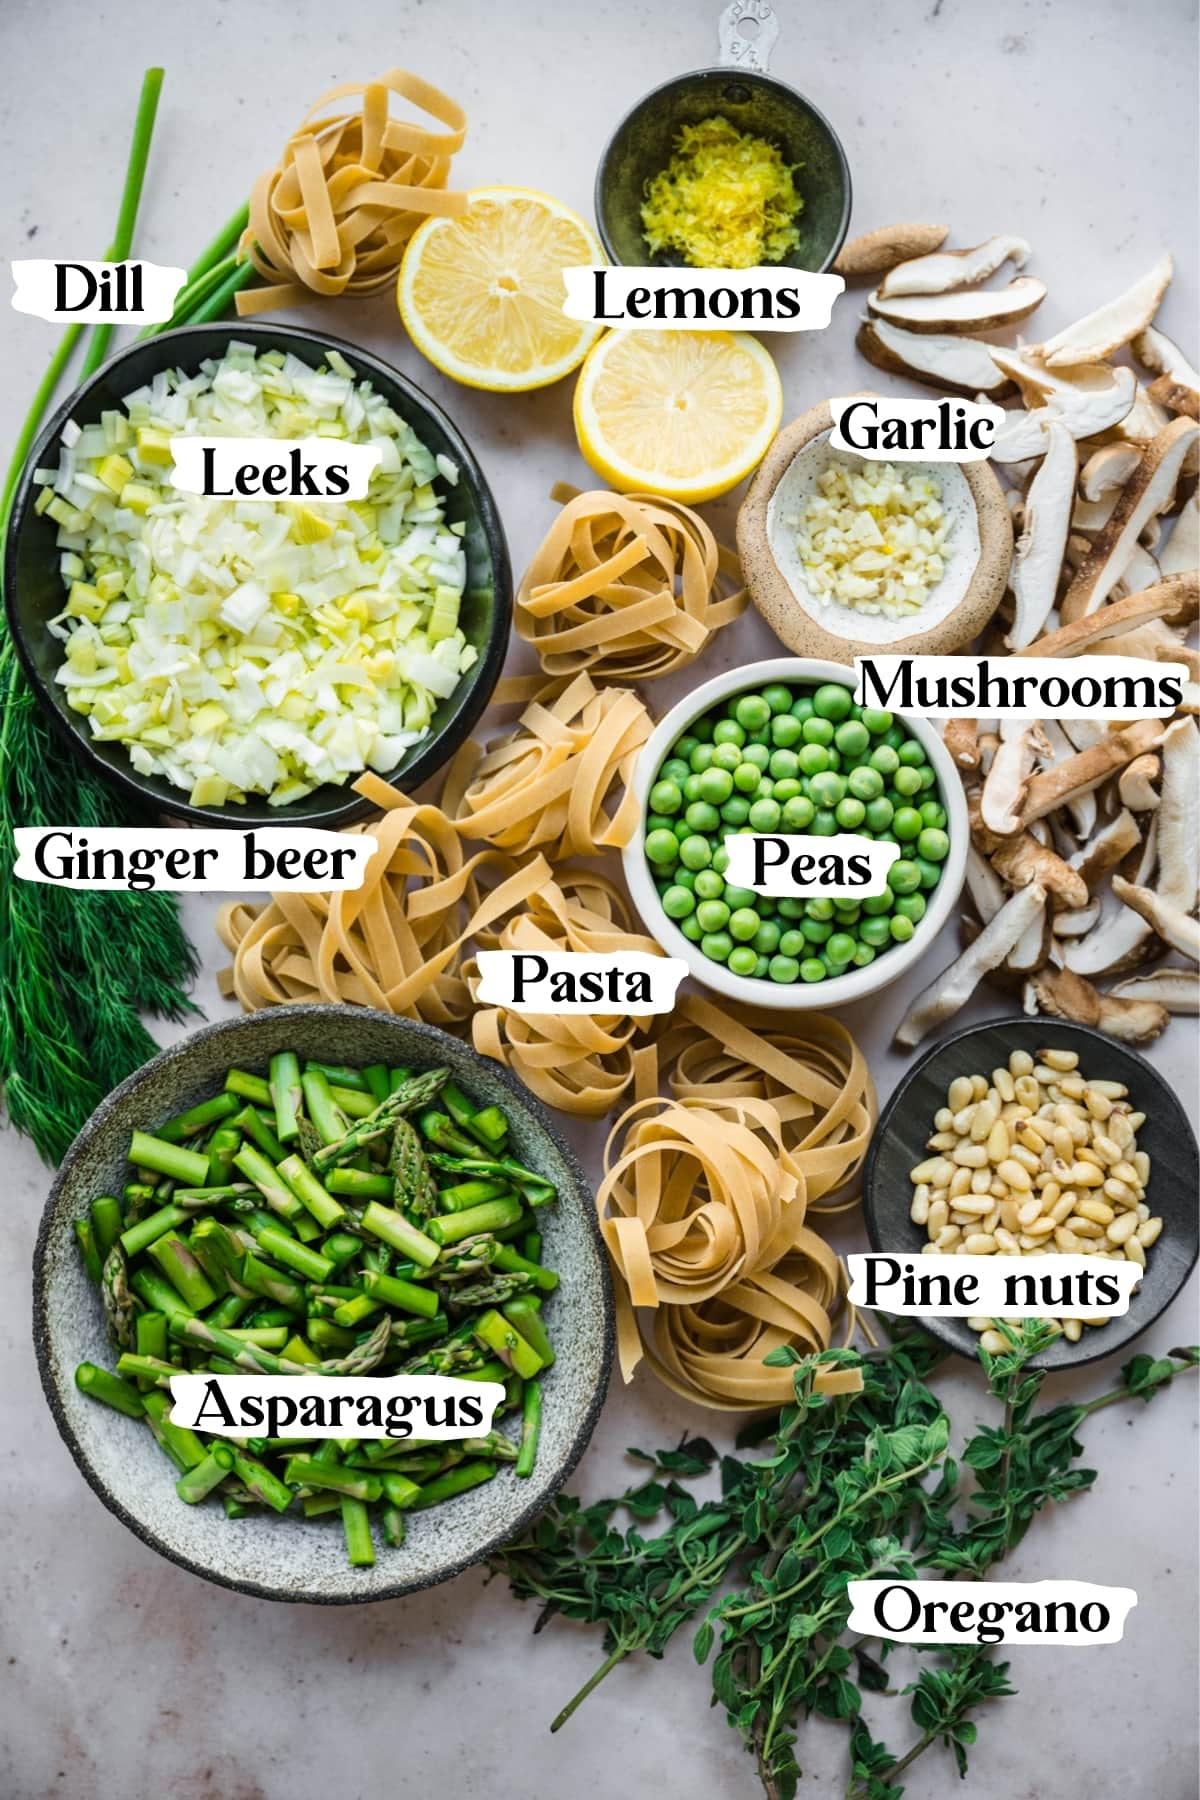 overhead view of ingredients for vegan spring vegetable pasta in small bowls with text labels.